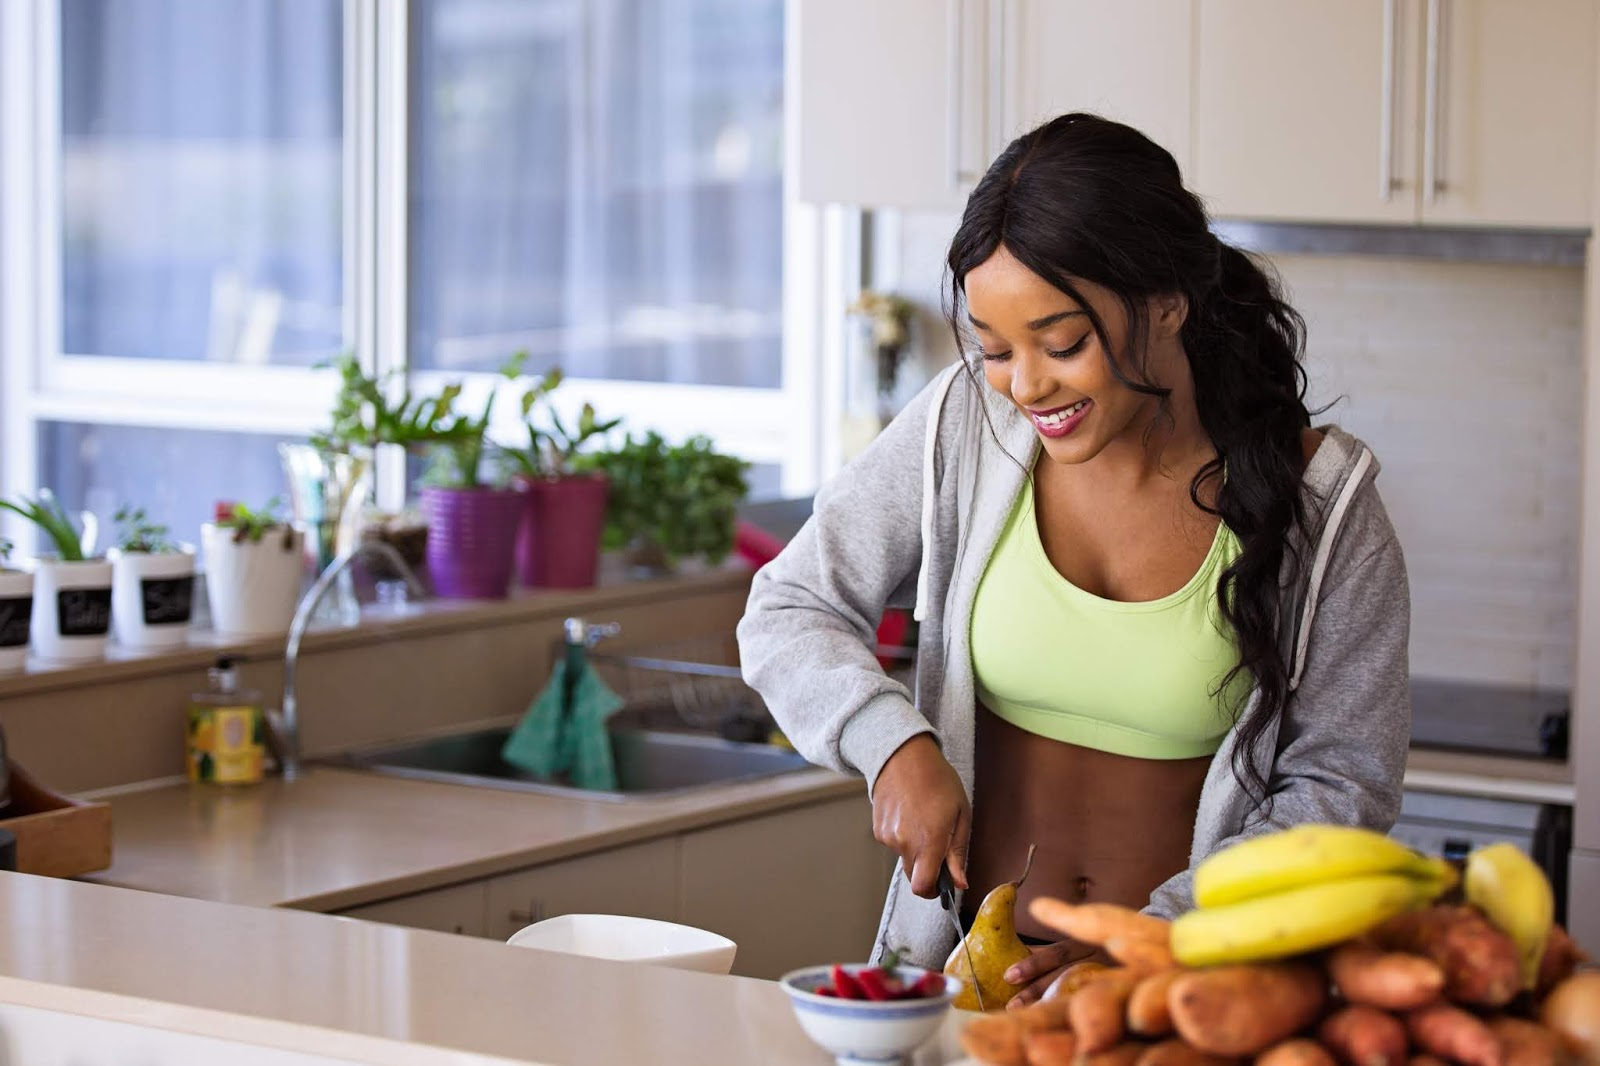 10 Tips for Healthy Living | Healthy Life 2019